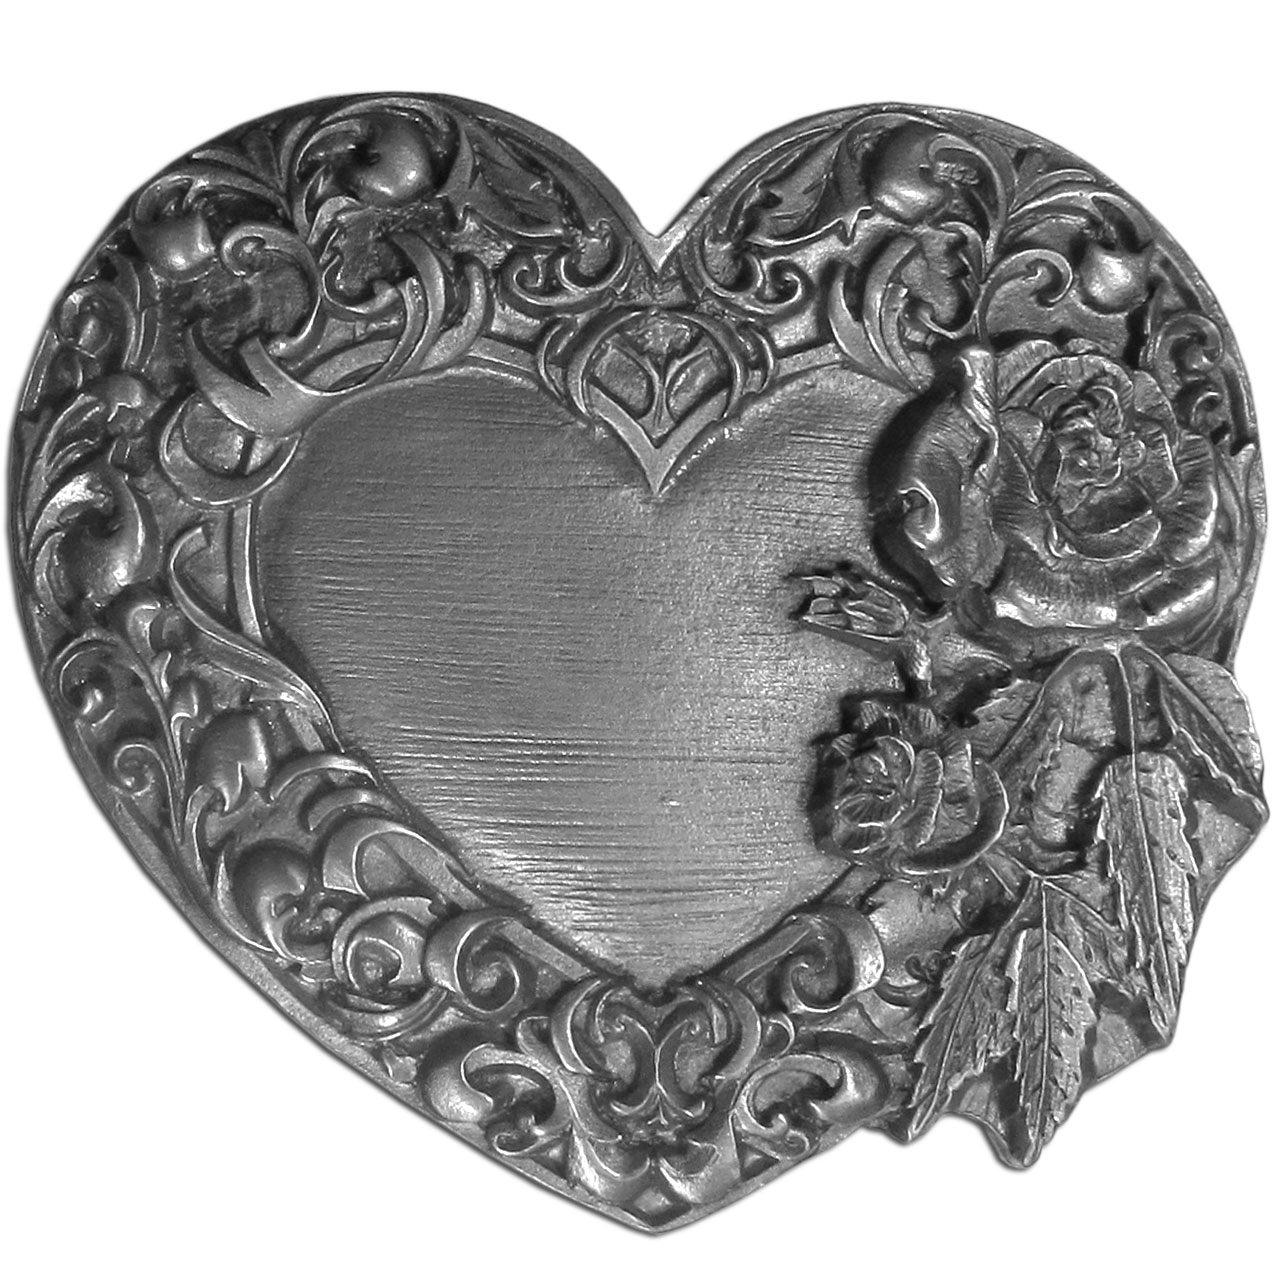 Rose and Heart Antiqued Belt Buckle - This fully cast metal belt buckle features intricately carved details and a gorgeous heart surrounding with a border of beautifully detailed roses.